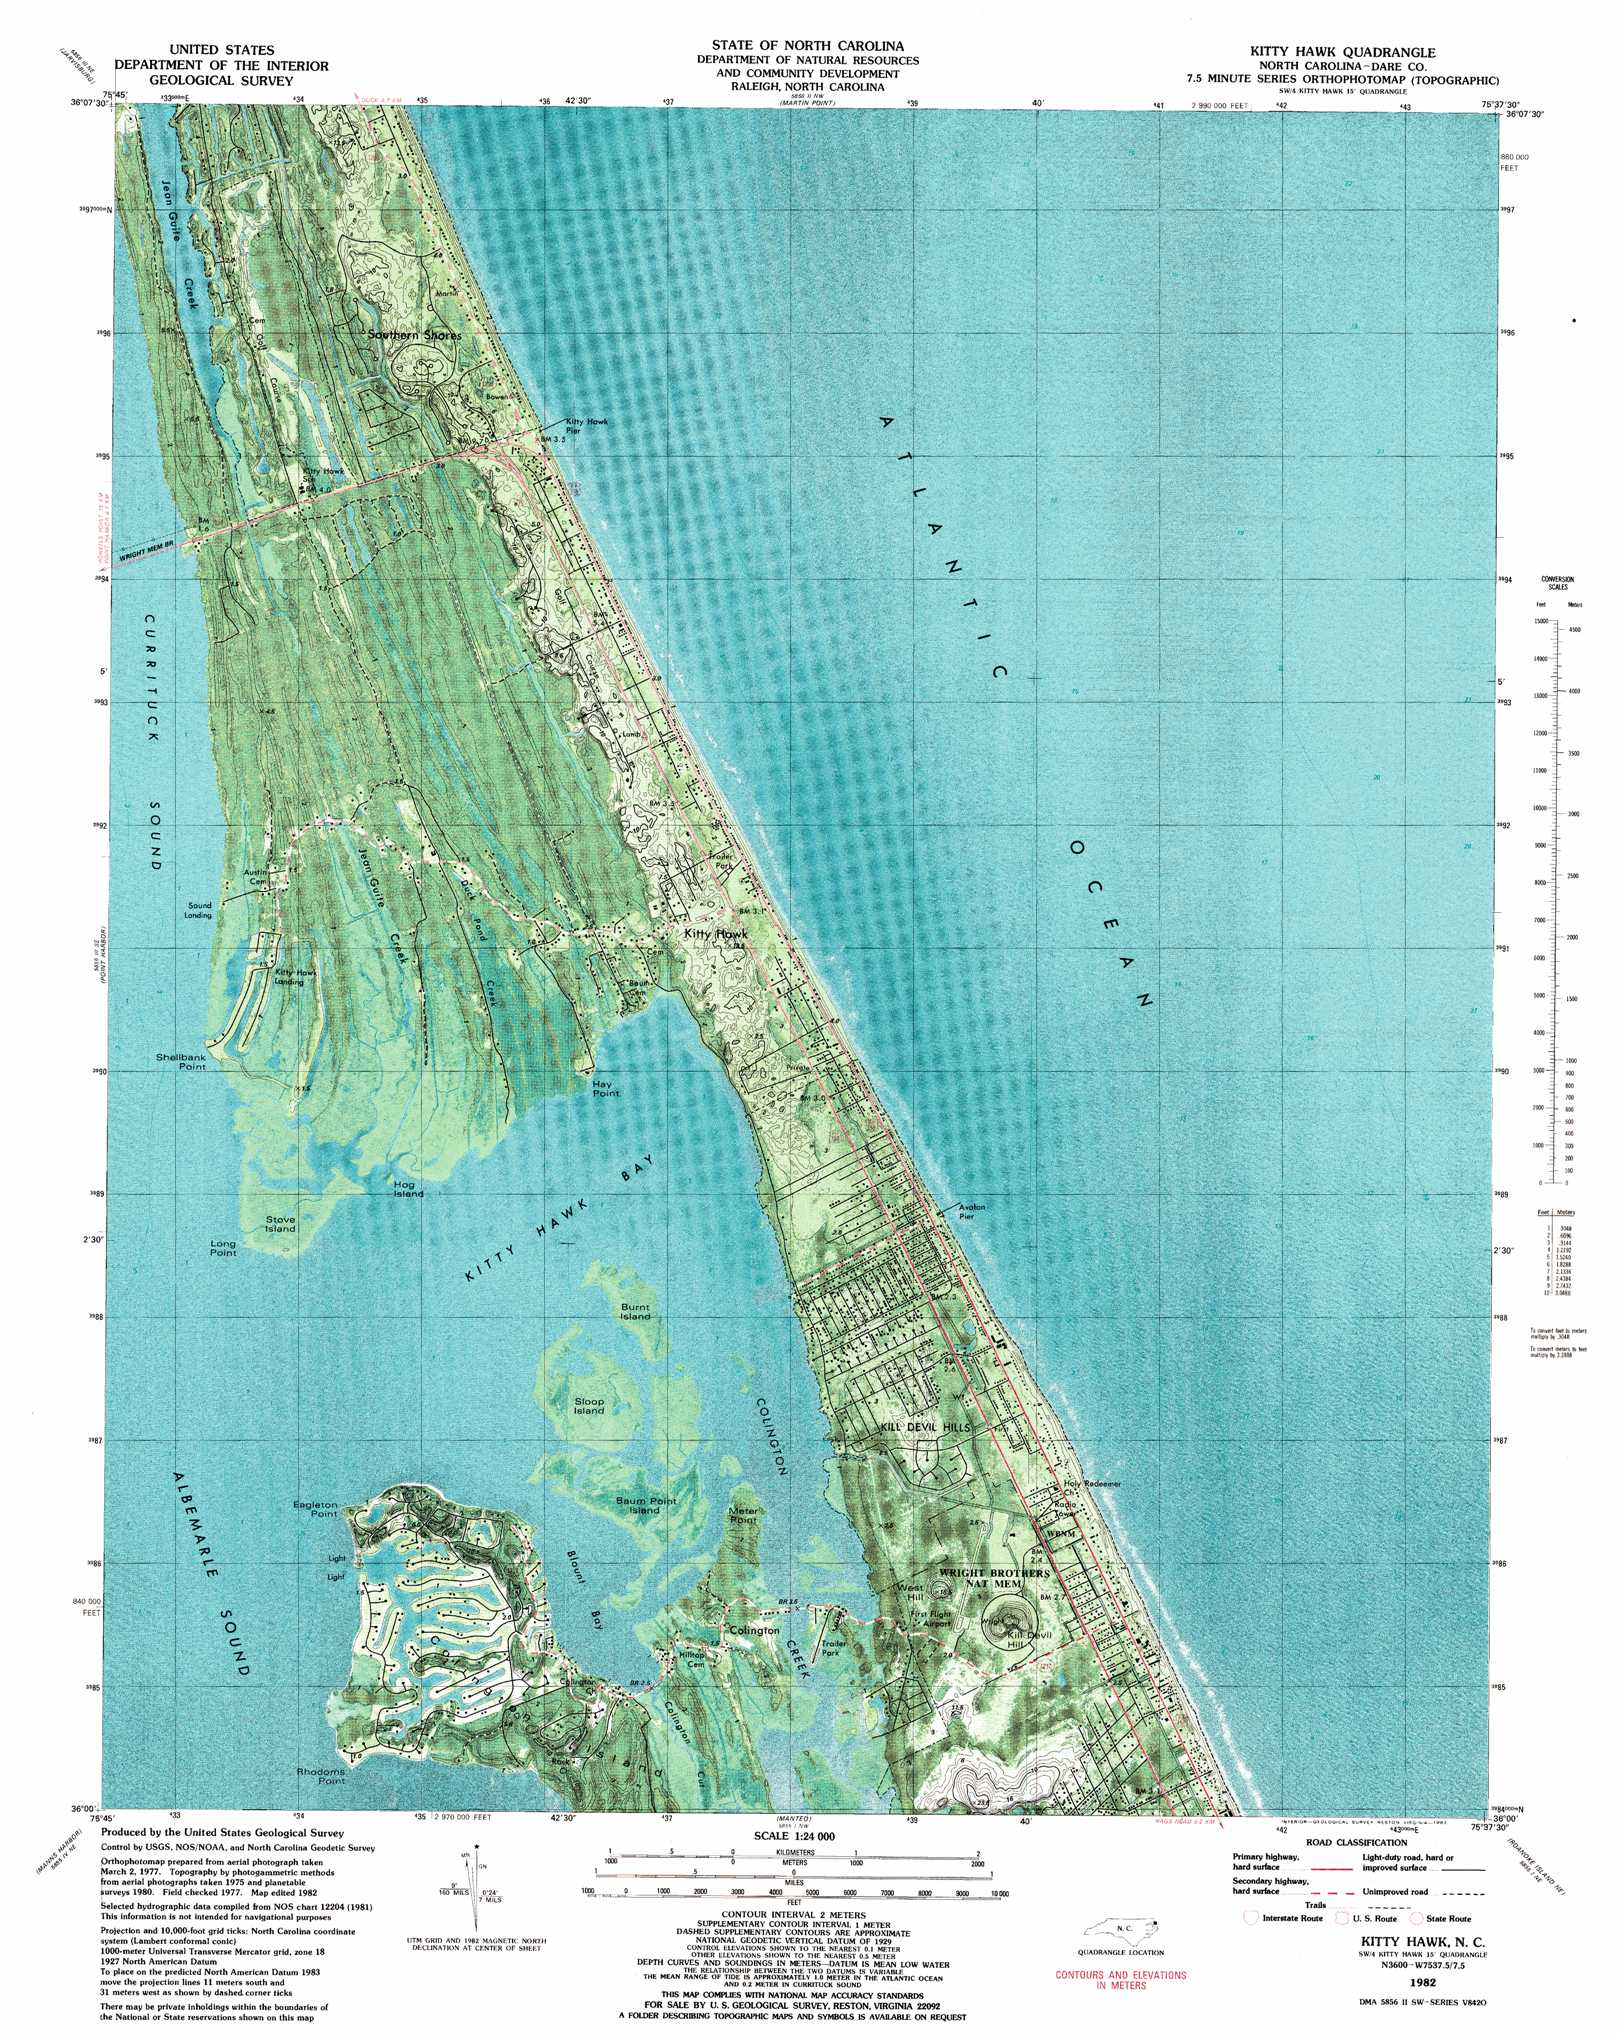 Kitty Hawk topographic map, NC - USGS Topo Quad 36075a6 on united states nc map, jennette's pier nc map, outer banks map, colington island nc map, longwood nc map, kill devil nc map, roanoke island nc map, philadelphia nc map, new inlet nc map, panama canal map, grandy nc map, knotts island nc map, north myrtle beach south carolina map, tennessee nc map, bath nc map, corolla nc map, maryland nc map, highway 64 nc map, nags head nc map, baltimore nc map,